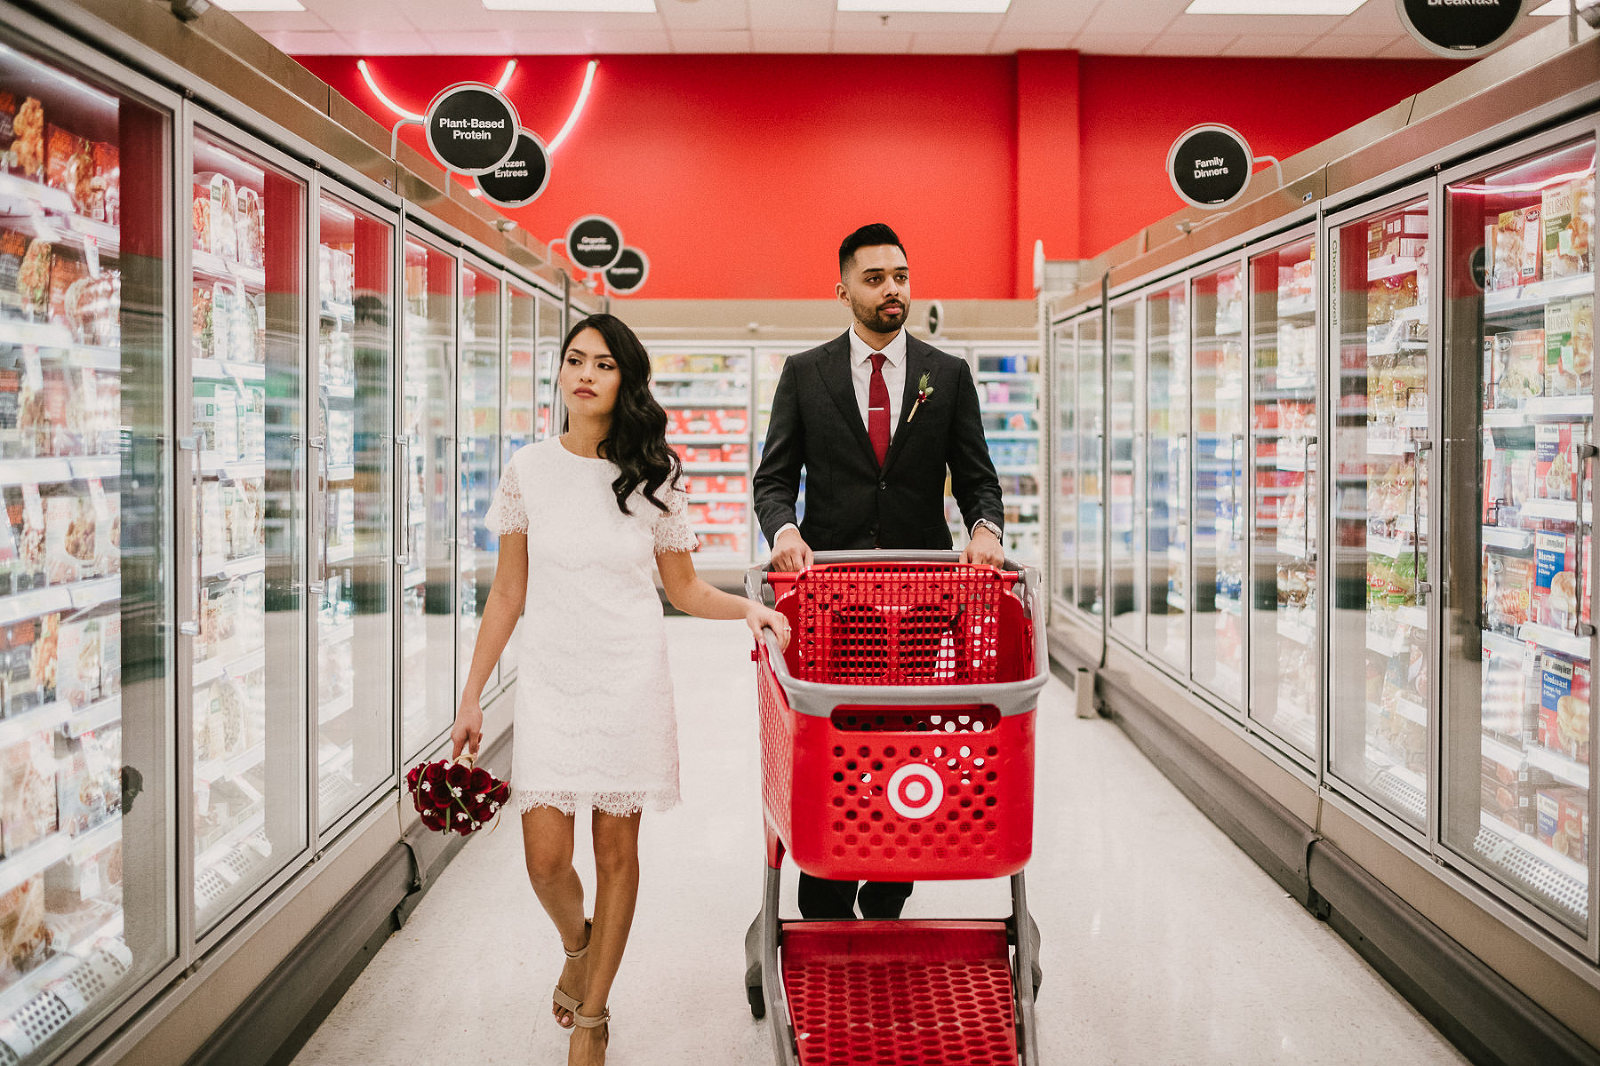 Target Miami Elopement 13 Pp W1600 H1066 The Knot News